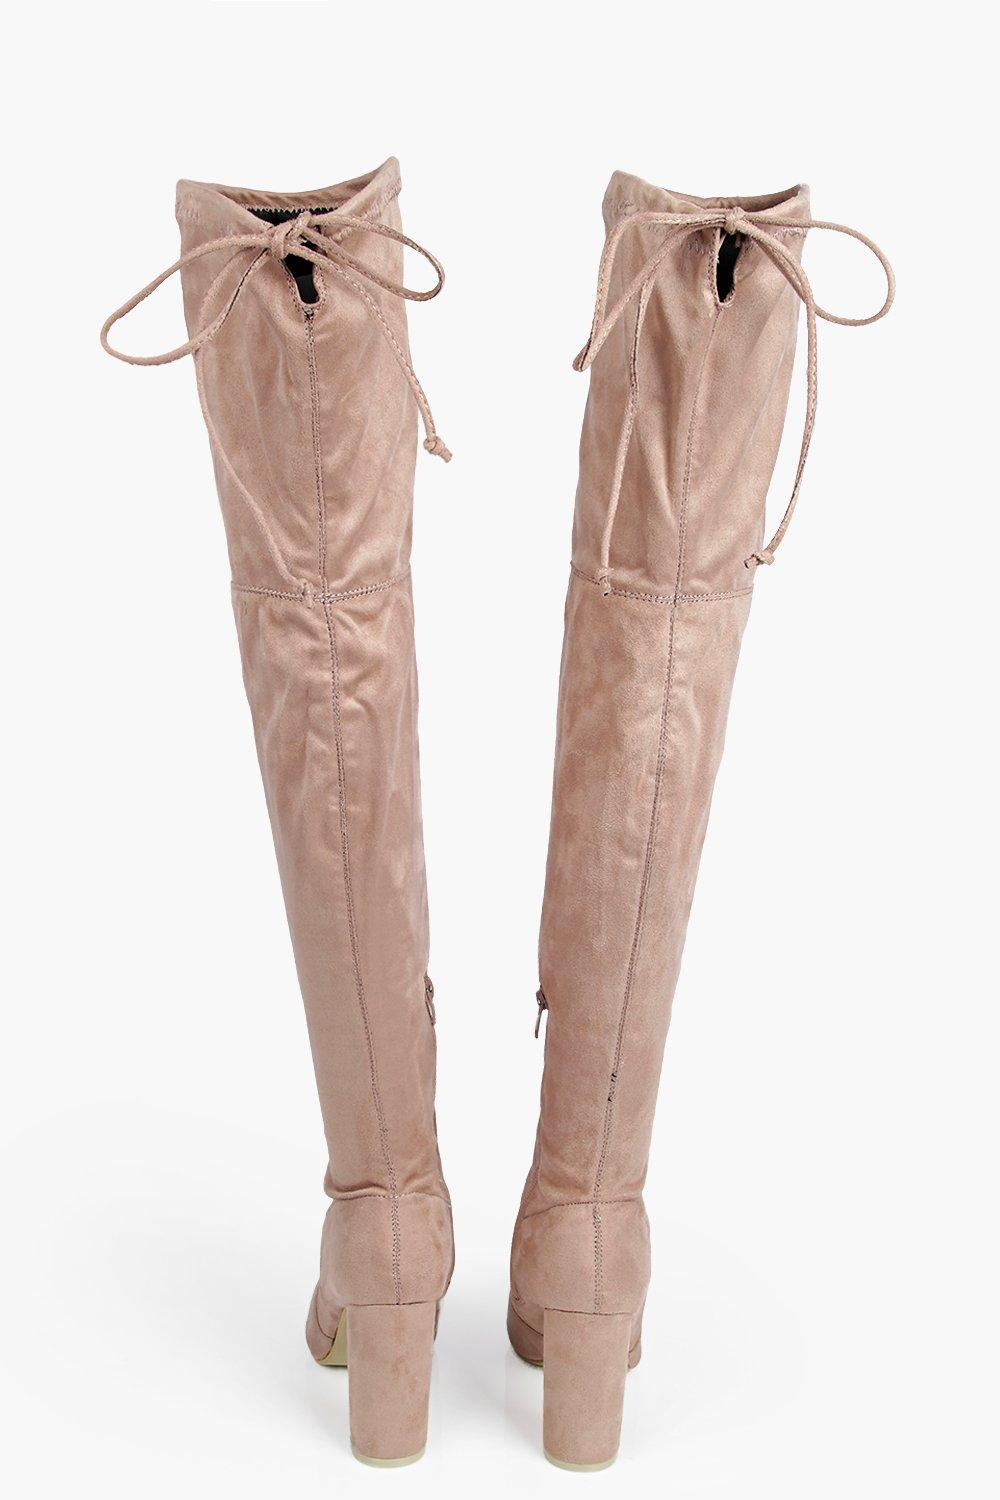 bd7b5cae2e15 Mia Block Heel Lace Up Back Over Knee Boot alternative image